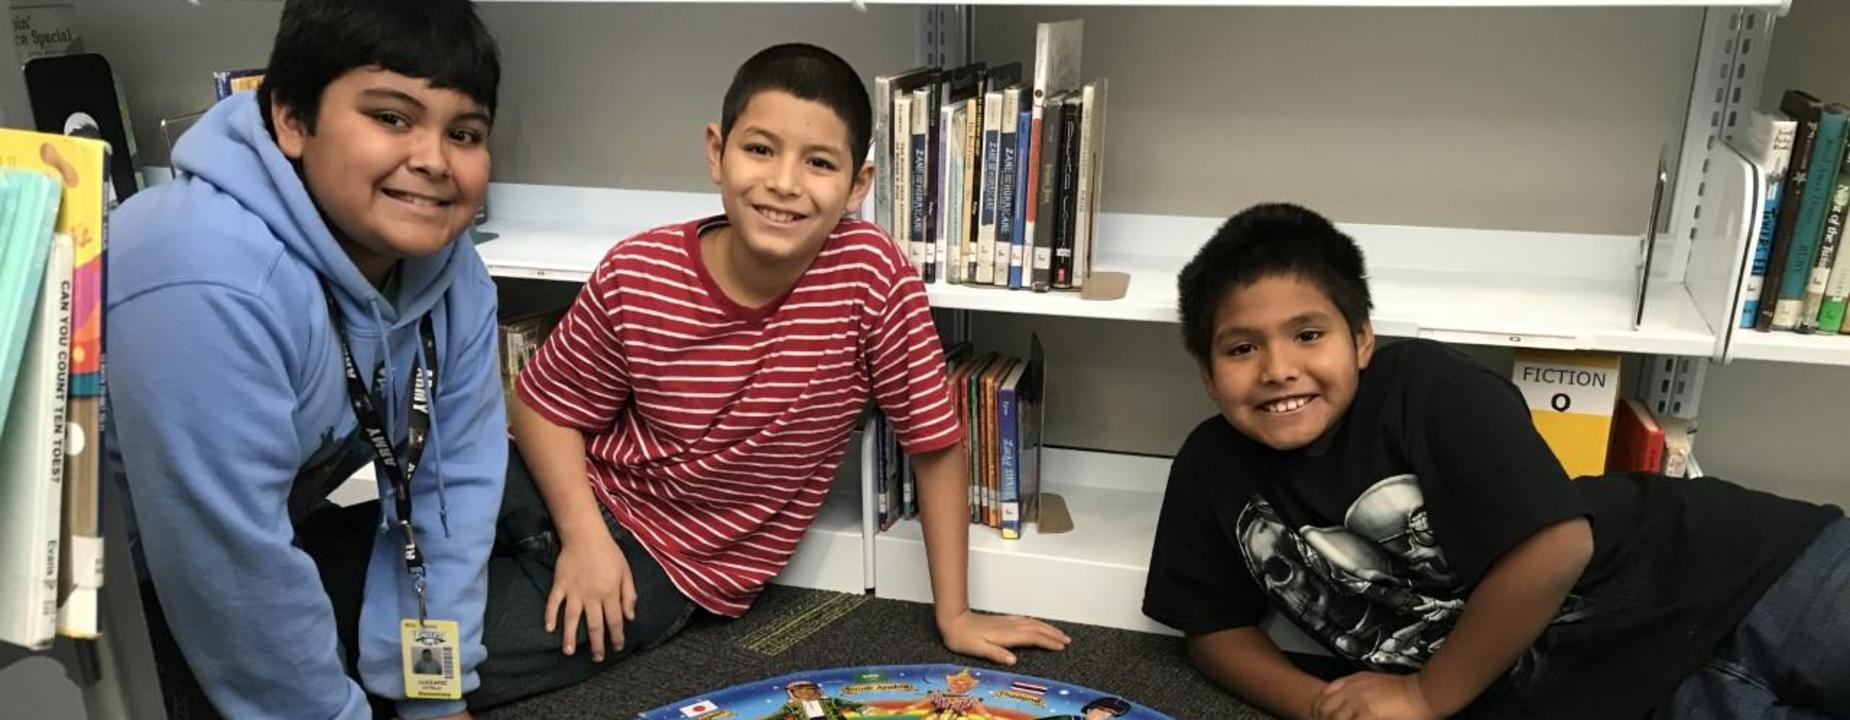 Elementary boys with puzzle at library